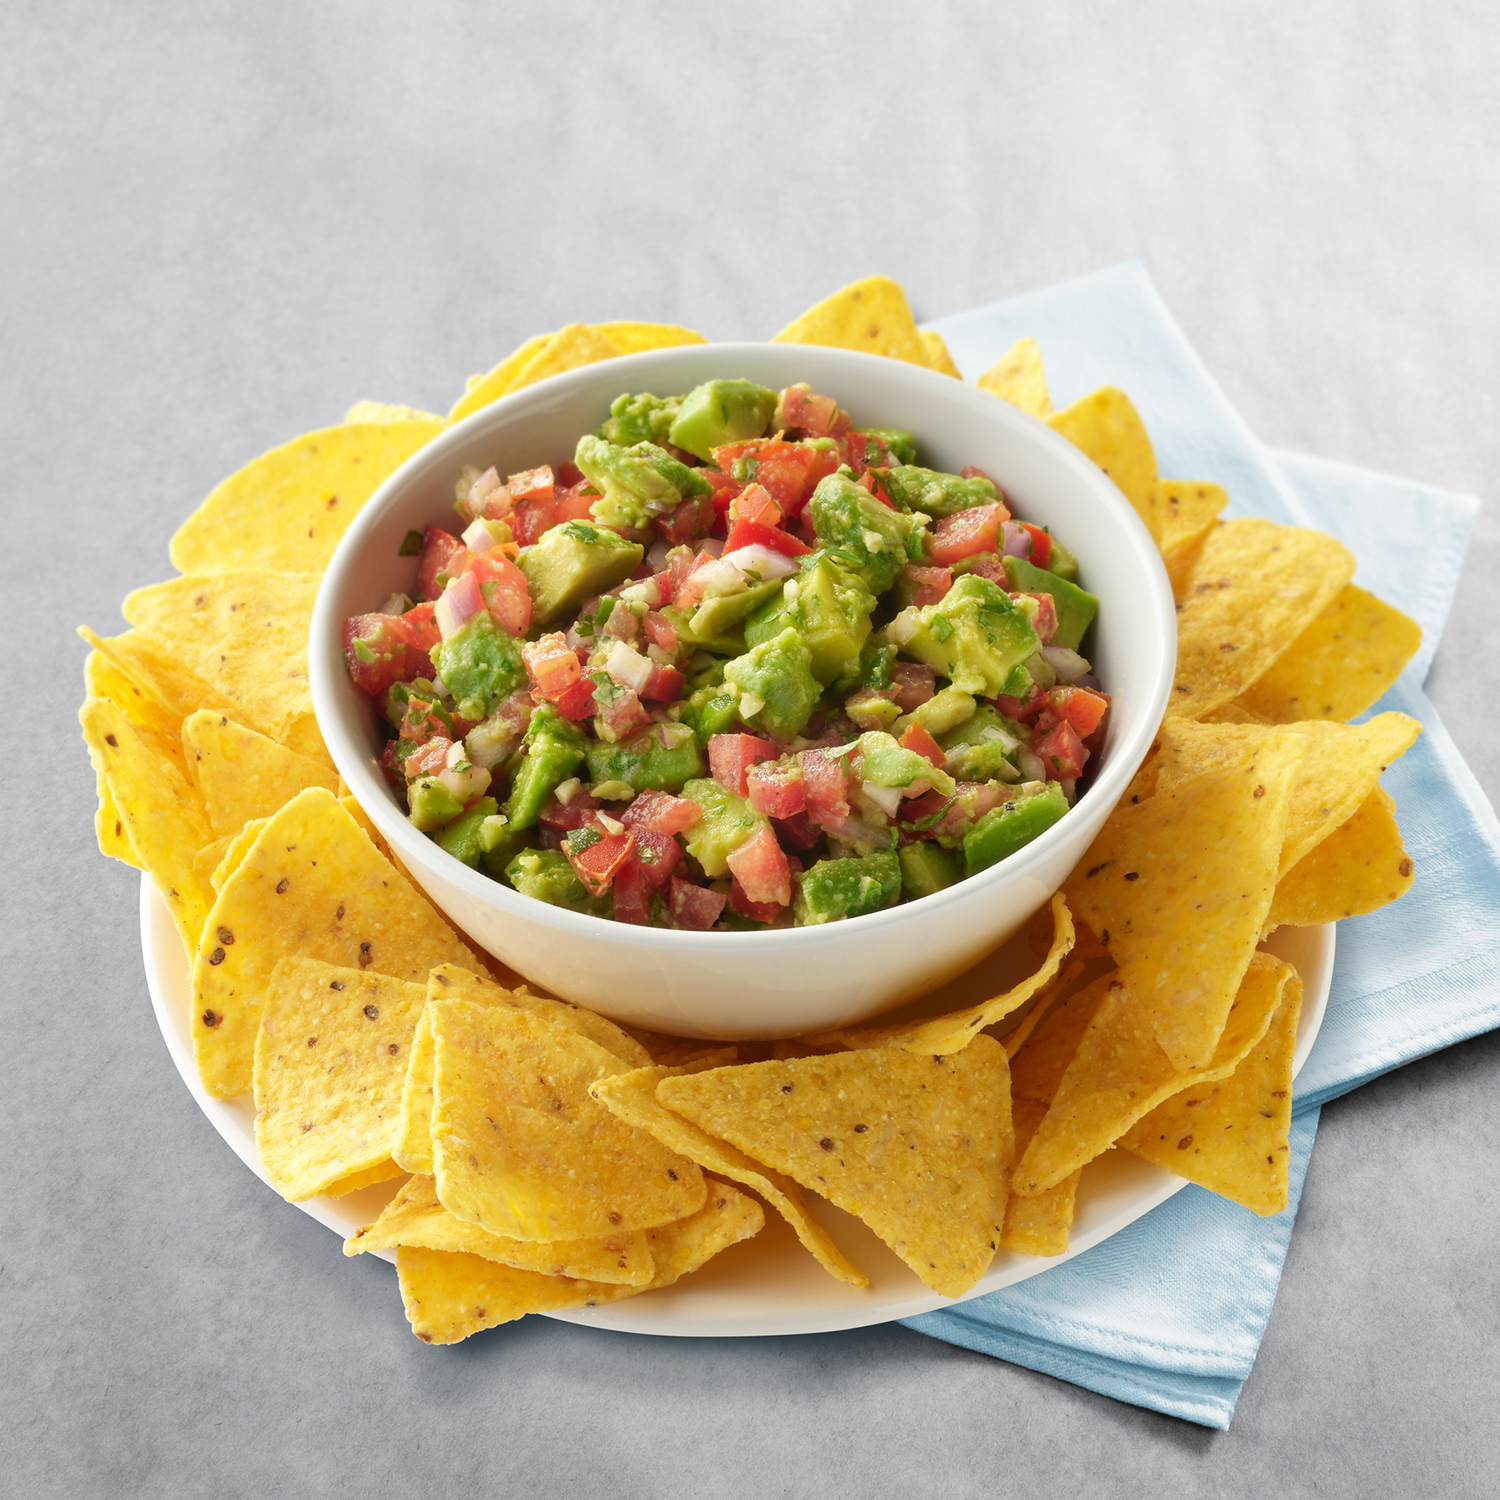 Eat Wholly avocado and salsa dip with chips